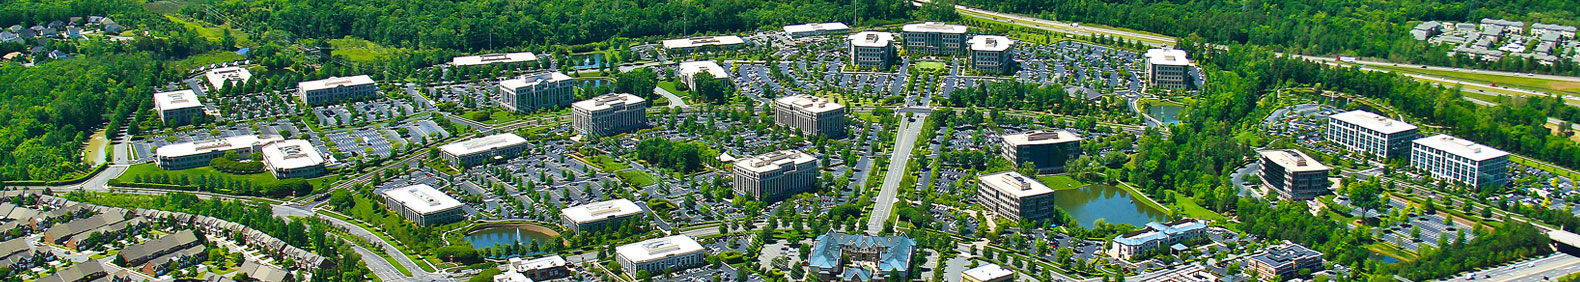 An aerial shot of the Ballantyne village and community